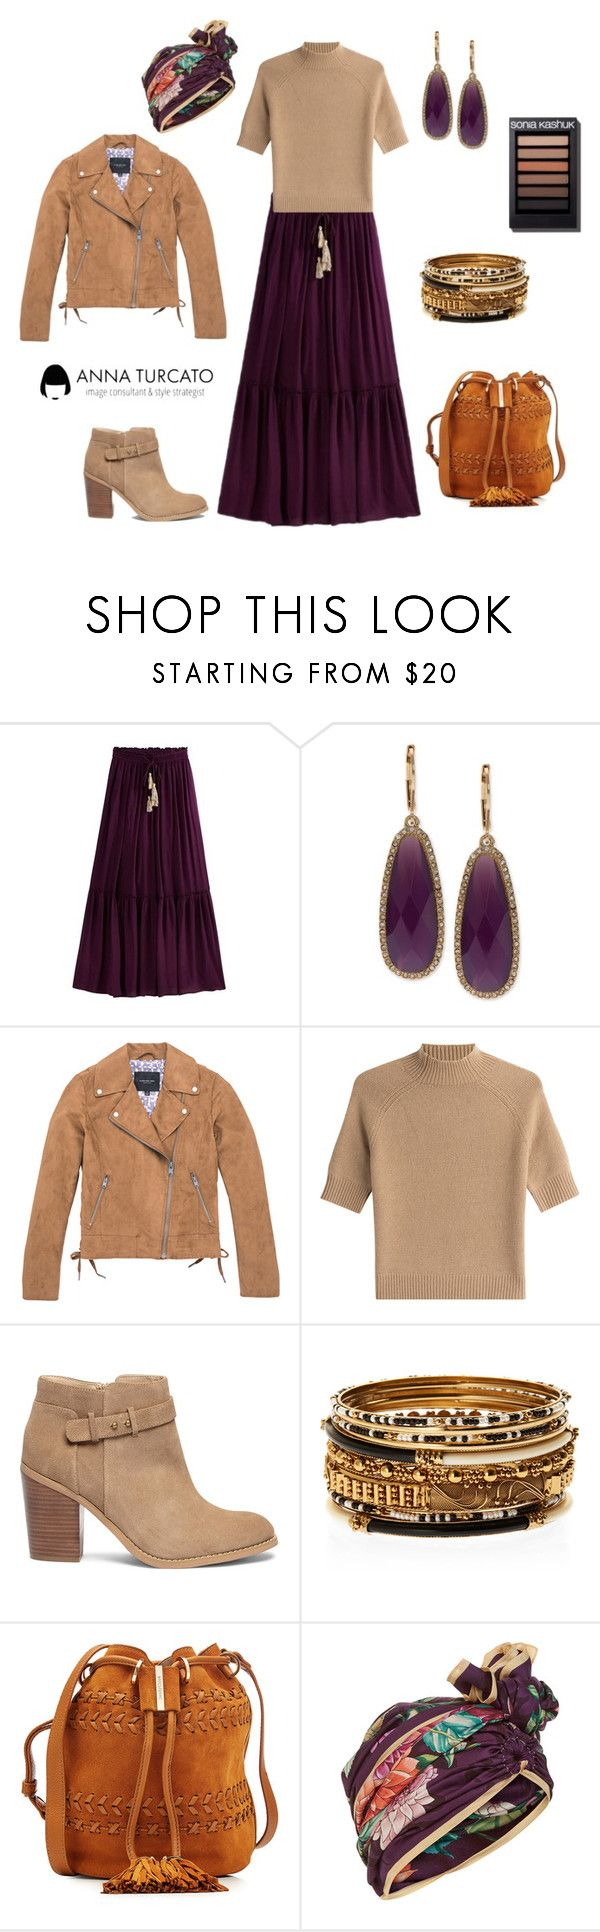 """""""Etno lady in Autumn"""" by annaturcato ❤ liked on Polyvore featuring Lonna & Lilly, Marc New York, Theory, Sole Society, Amrita Singh, See by Chloé and Dee Di Vita"""